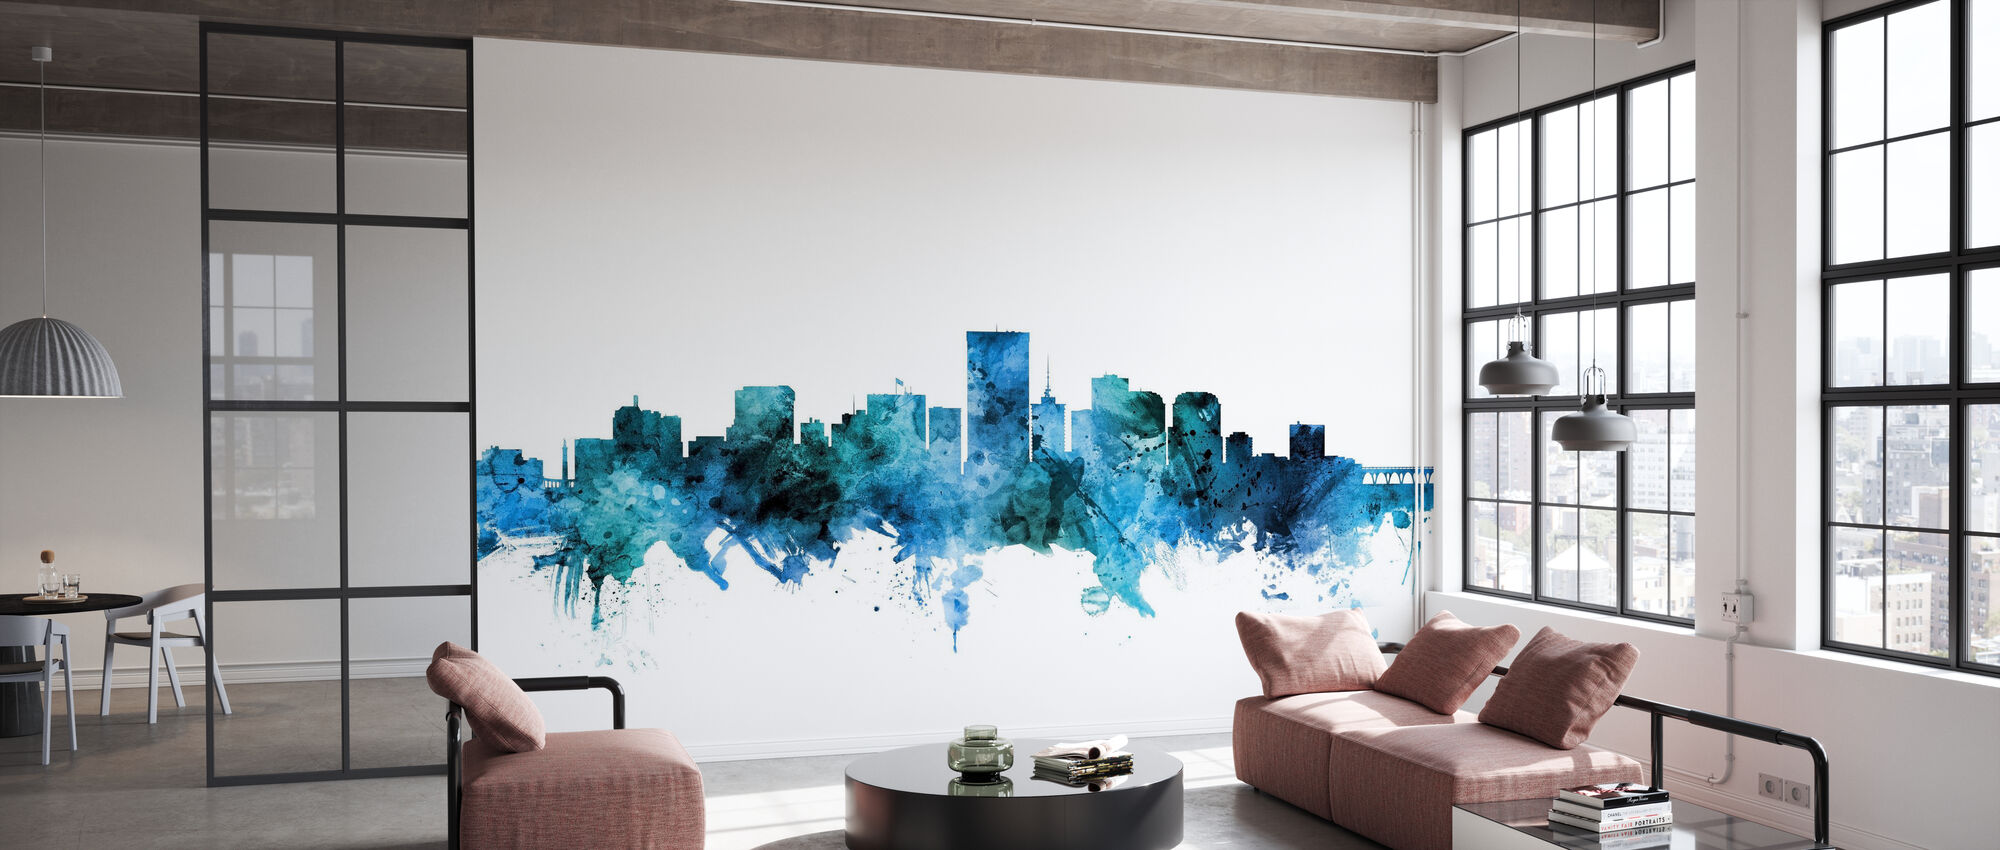 Richmond Virginia Skyline - Wallpaper - Office